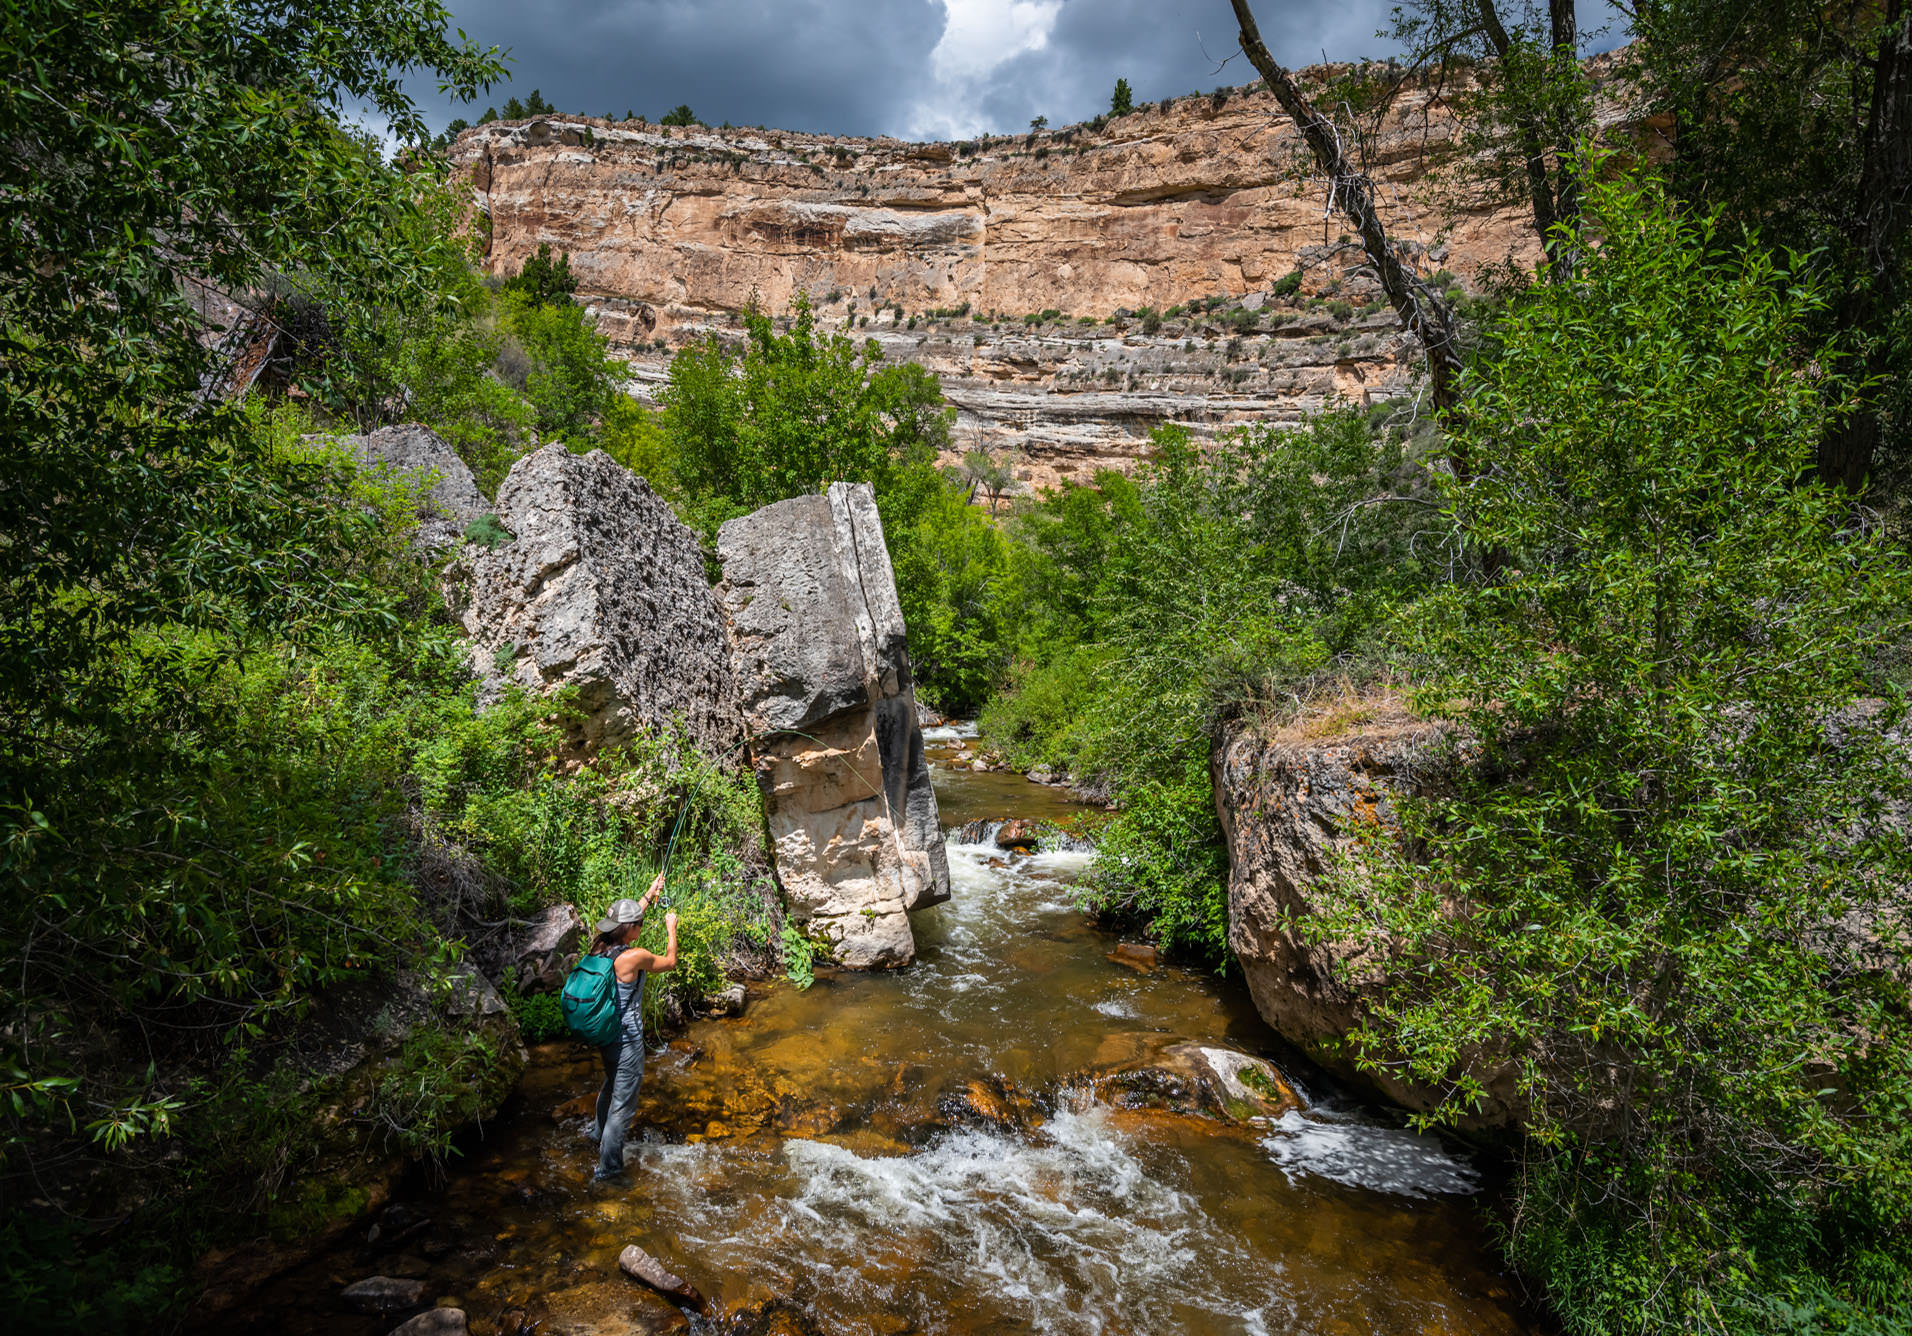 Dry Fly Fishing Guide Wyoming Outfitter Trout Brown Rainbow Brook Brookie